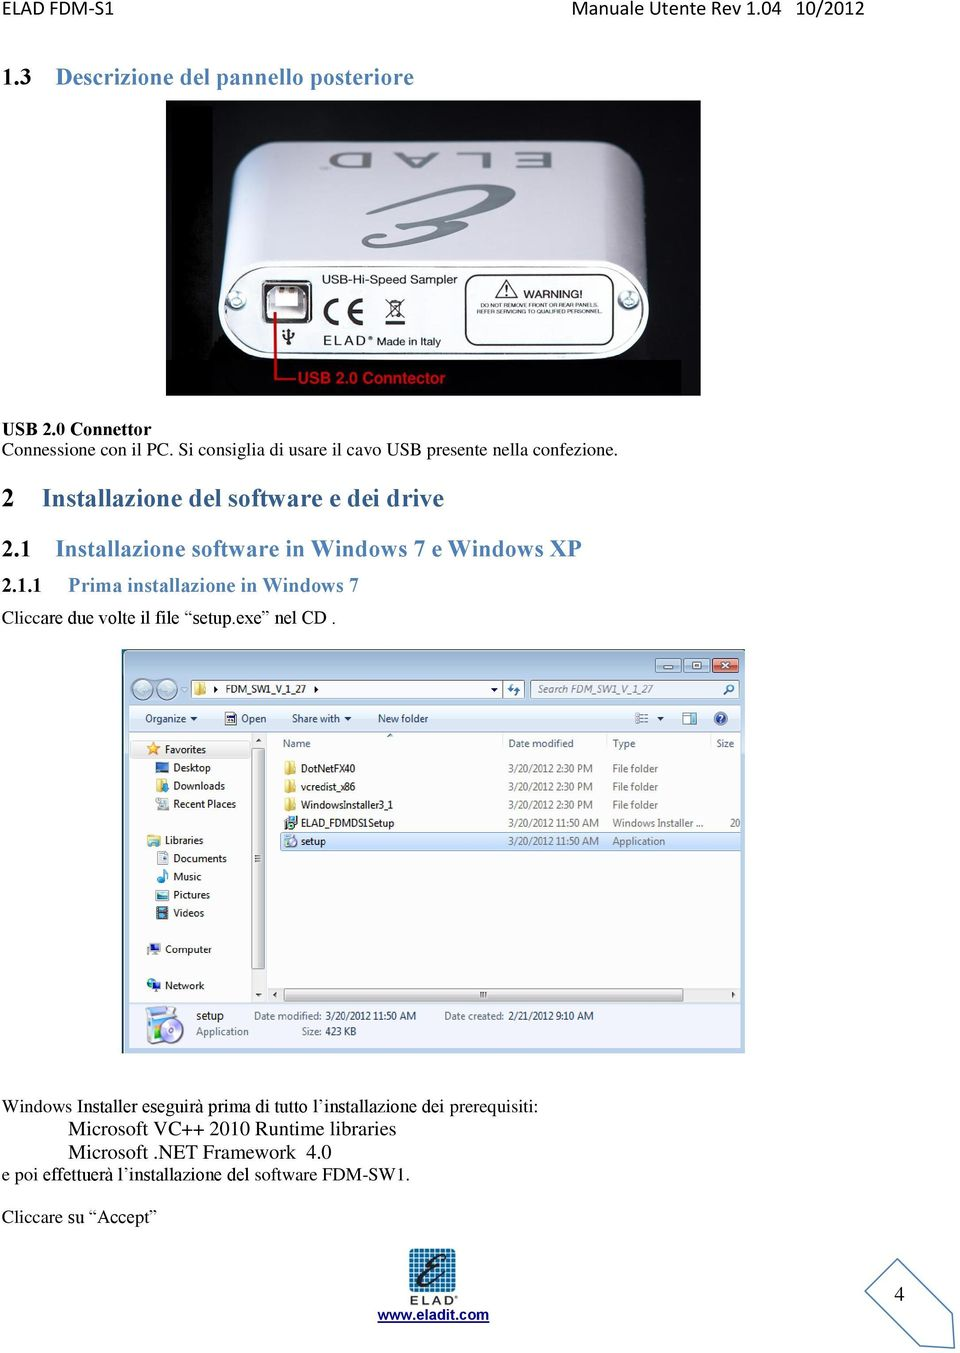 1 Installazione software in Windows 7 e Windows XP 2.1.1 Prima installazione in Windows 7 Cliccare due volte il file setup.exe nel CD.